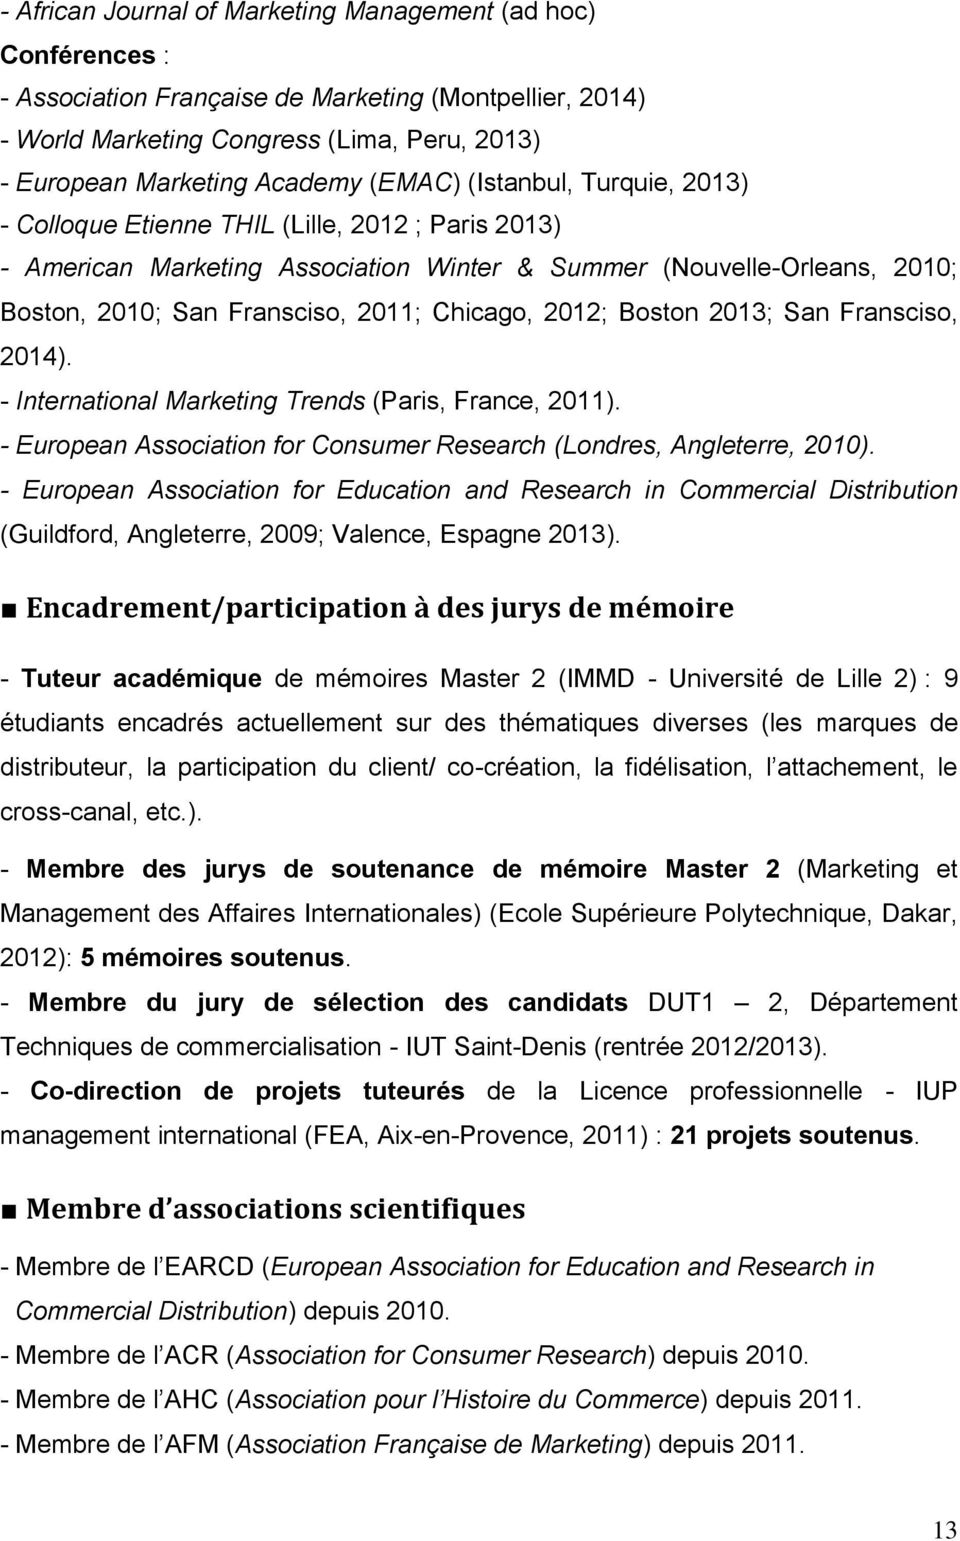 Chicago, 2012; Boston 2013; San Fransciso, 2014). - International Marketing Trends (Paris, France, 2011). - European Association for Consumer Research (Londres, Angleterre, 2010).